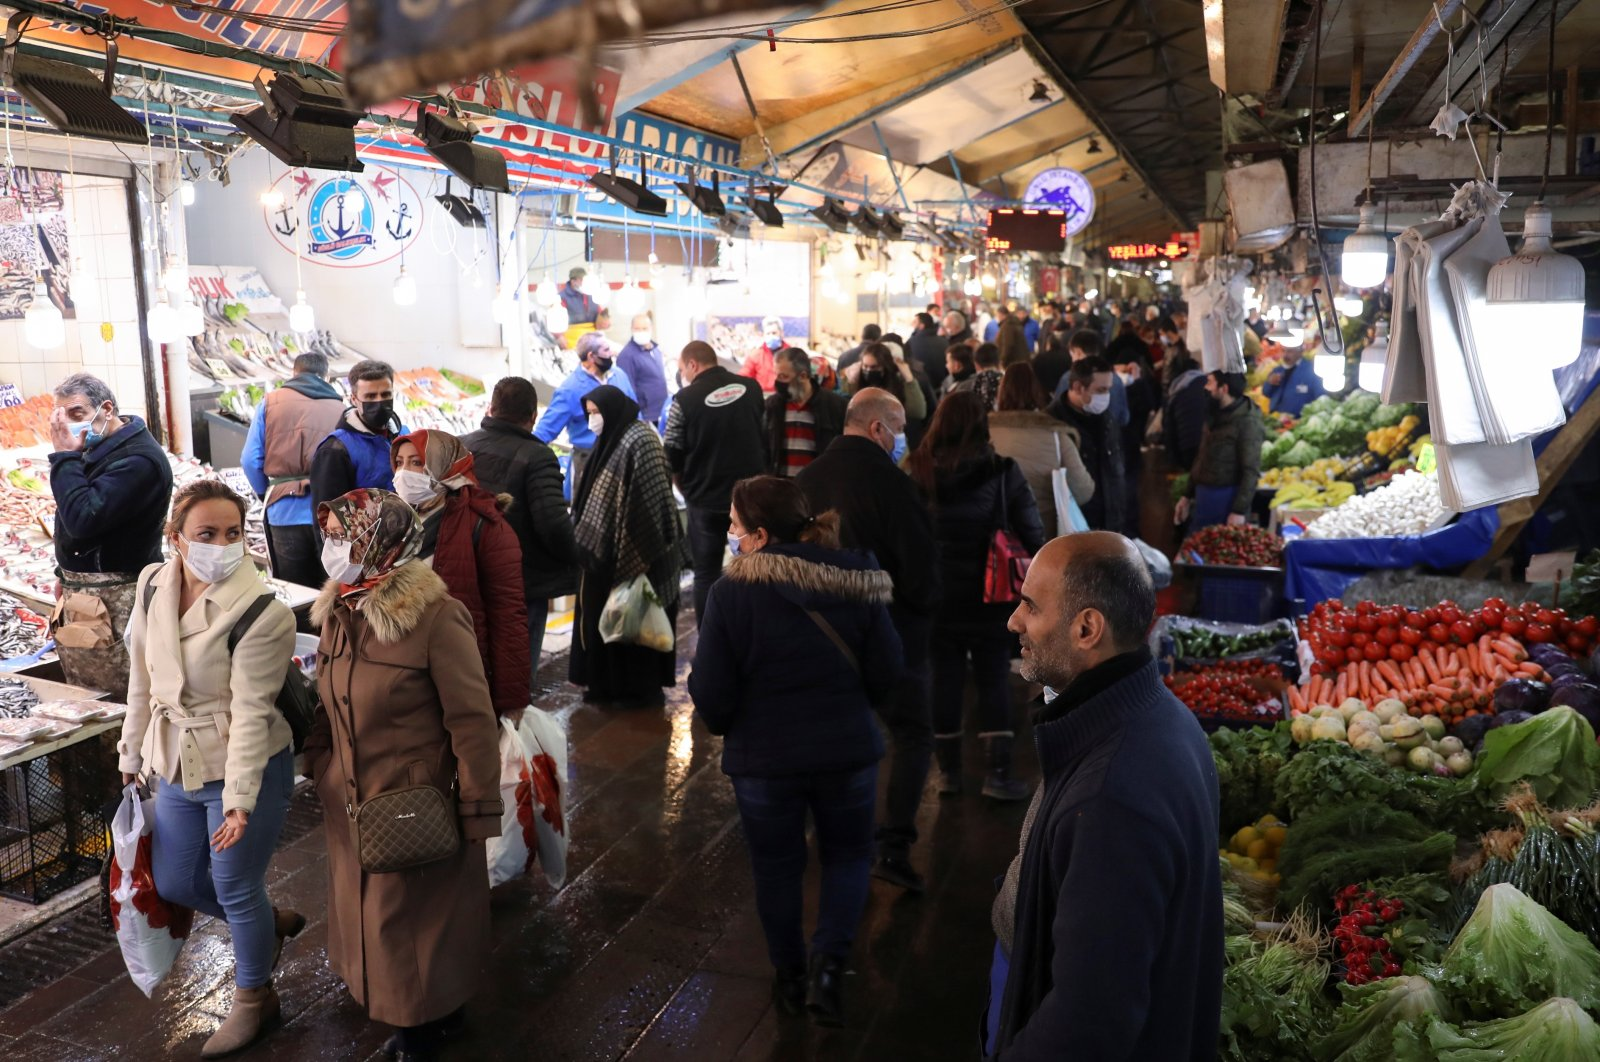 People wearing protective masks shop at a local market, amid the coronavirus outbreak, in the capital Ankara, Turkey, Feb. 24, 2021. (Reuters Photo)